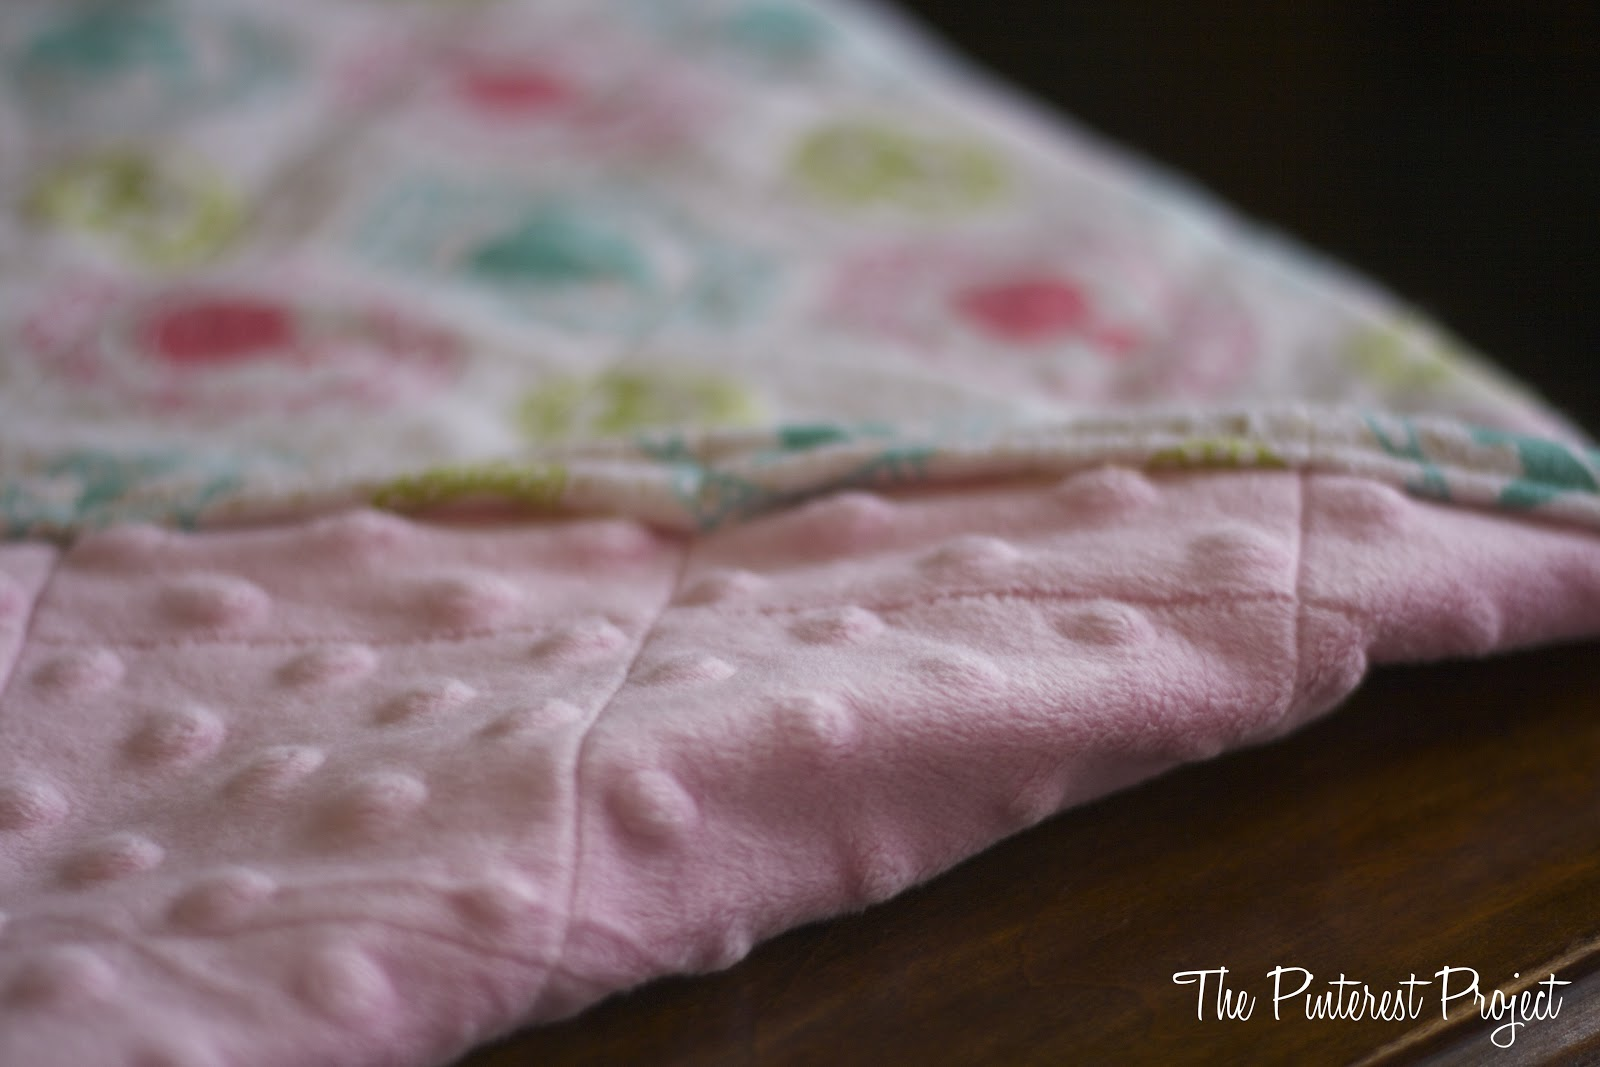 How To Make A Baby Blanket An Easy Baby Or Doll Blanket The Pinterest Project